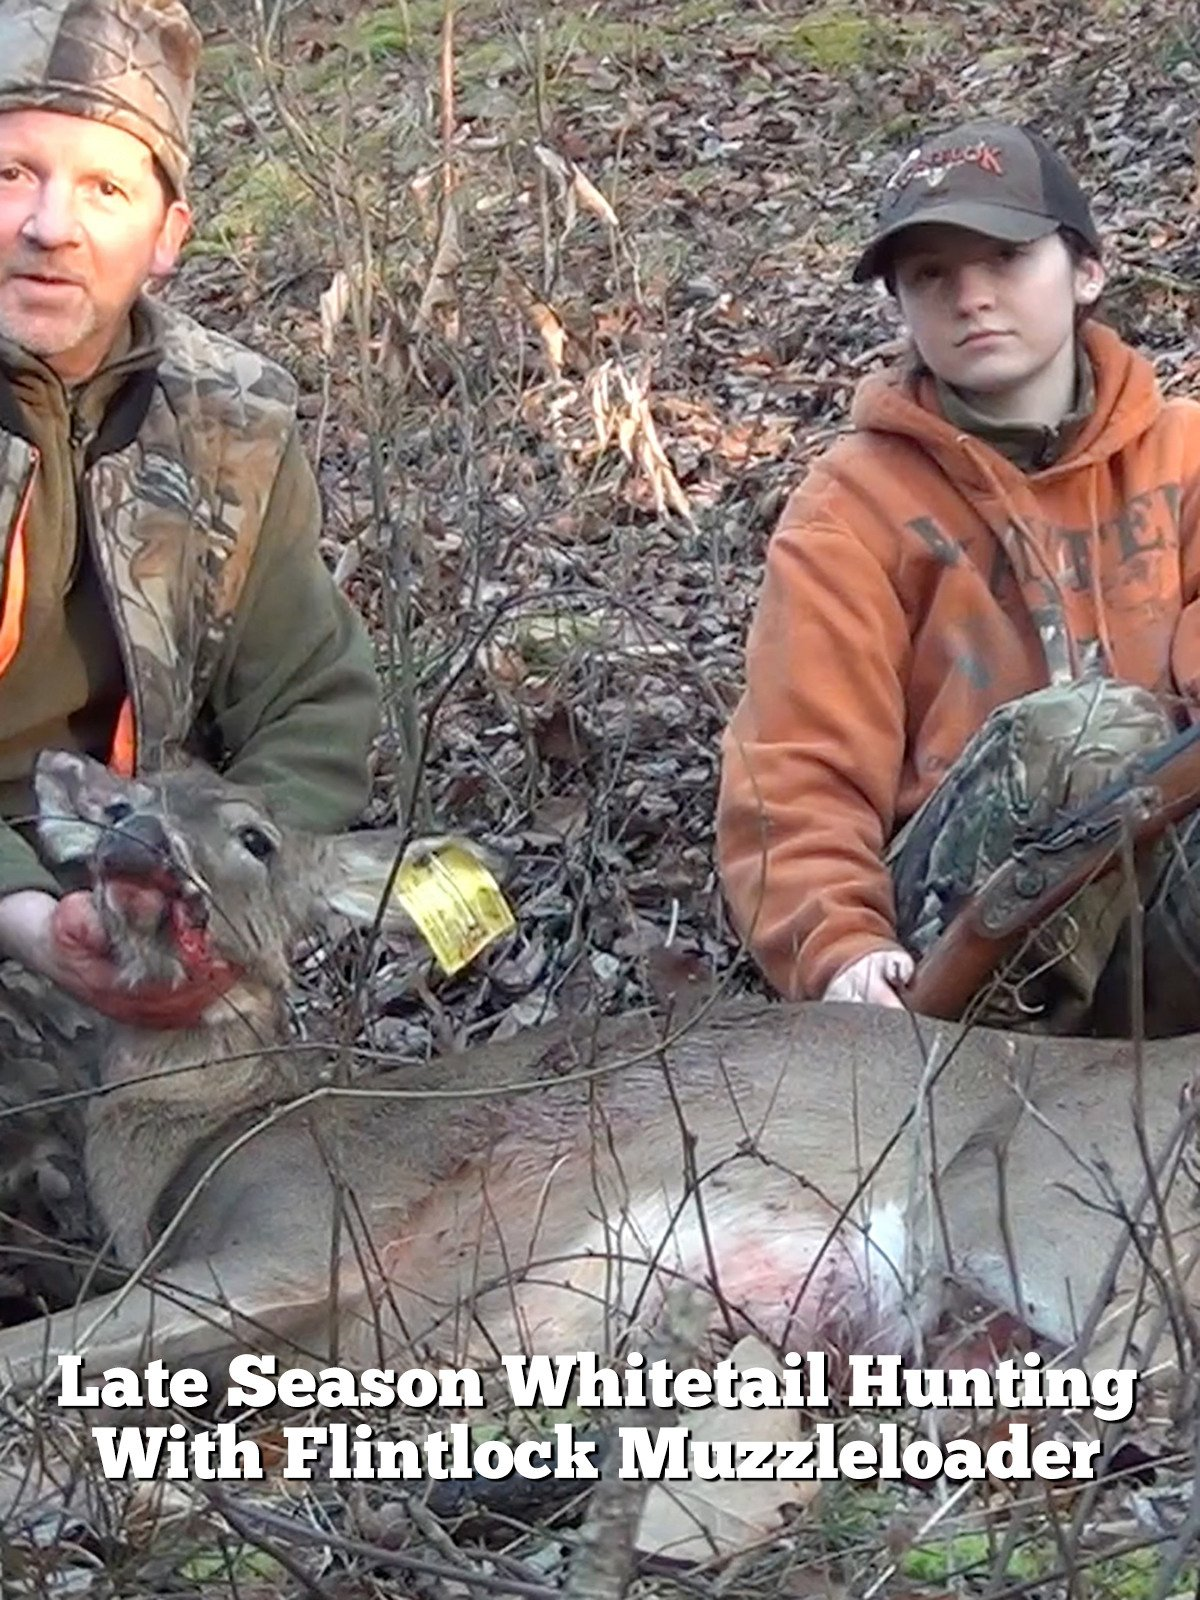 Late Season Whitetail Hunting With Flintlock Muzzleloader